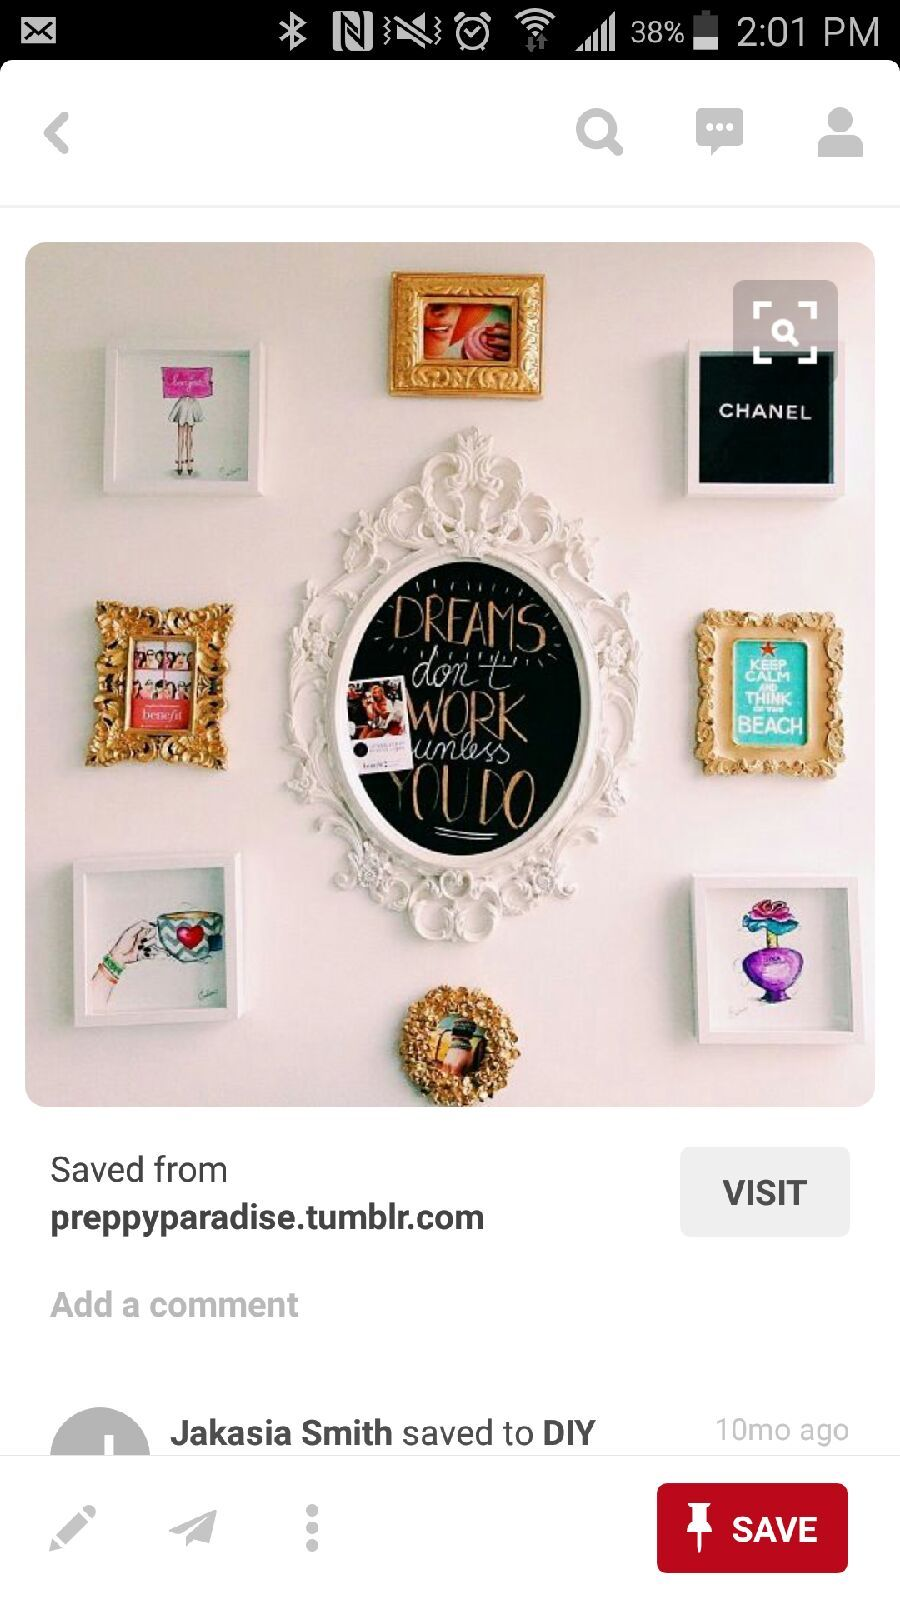 Diy room decor tumblr pinterest pin by nonia piggee on kids rooms  pinterest  kids rooms and room